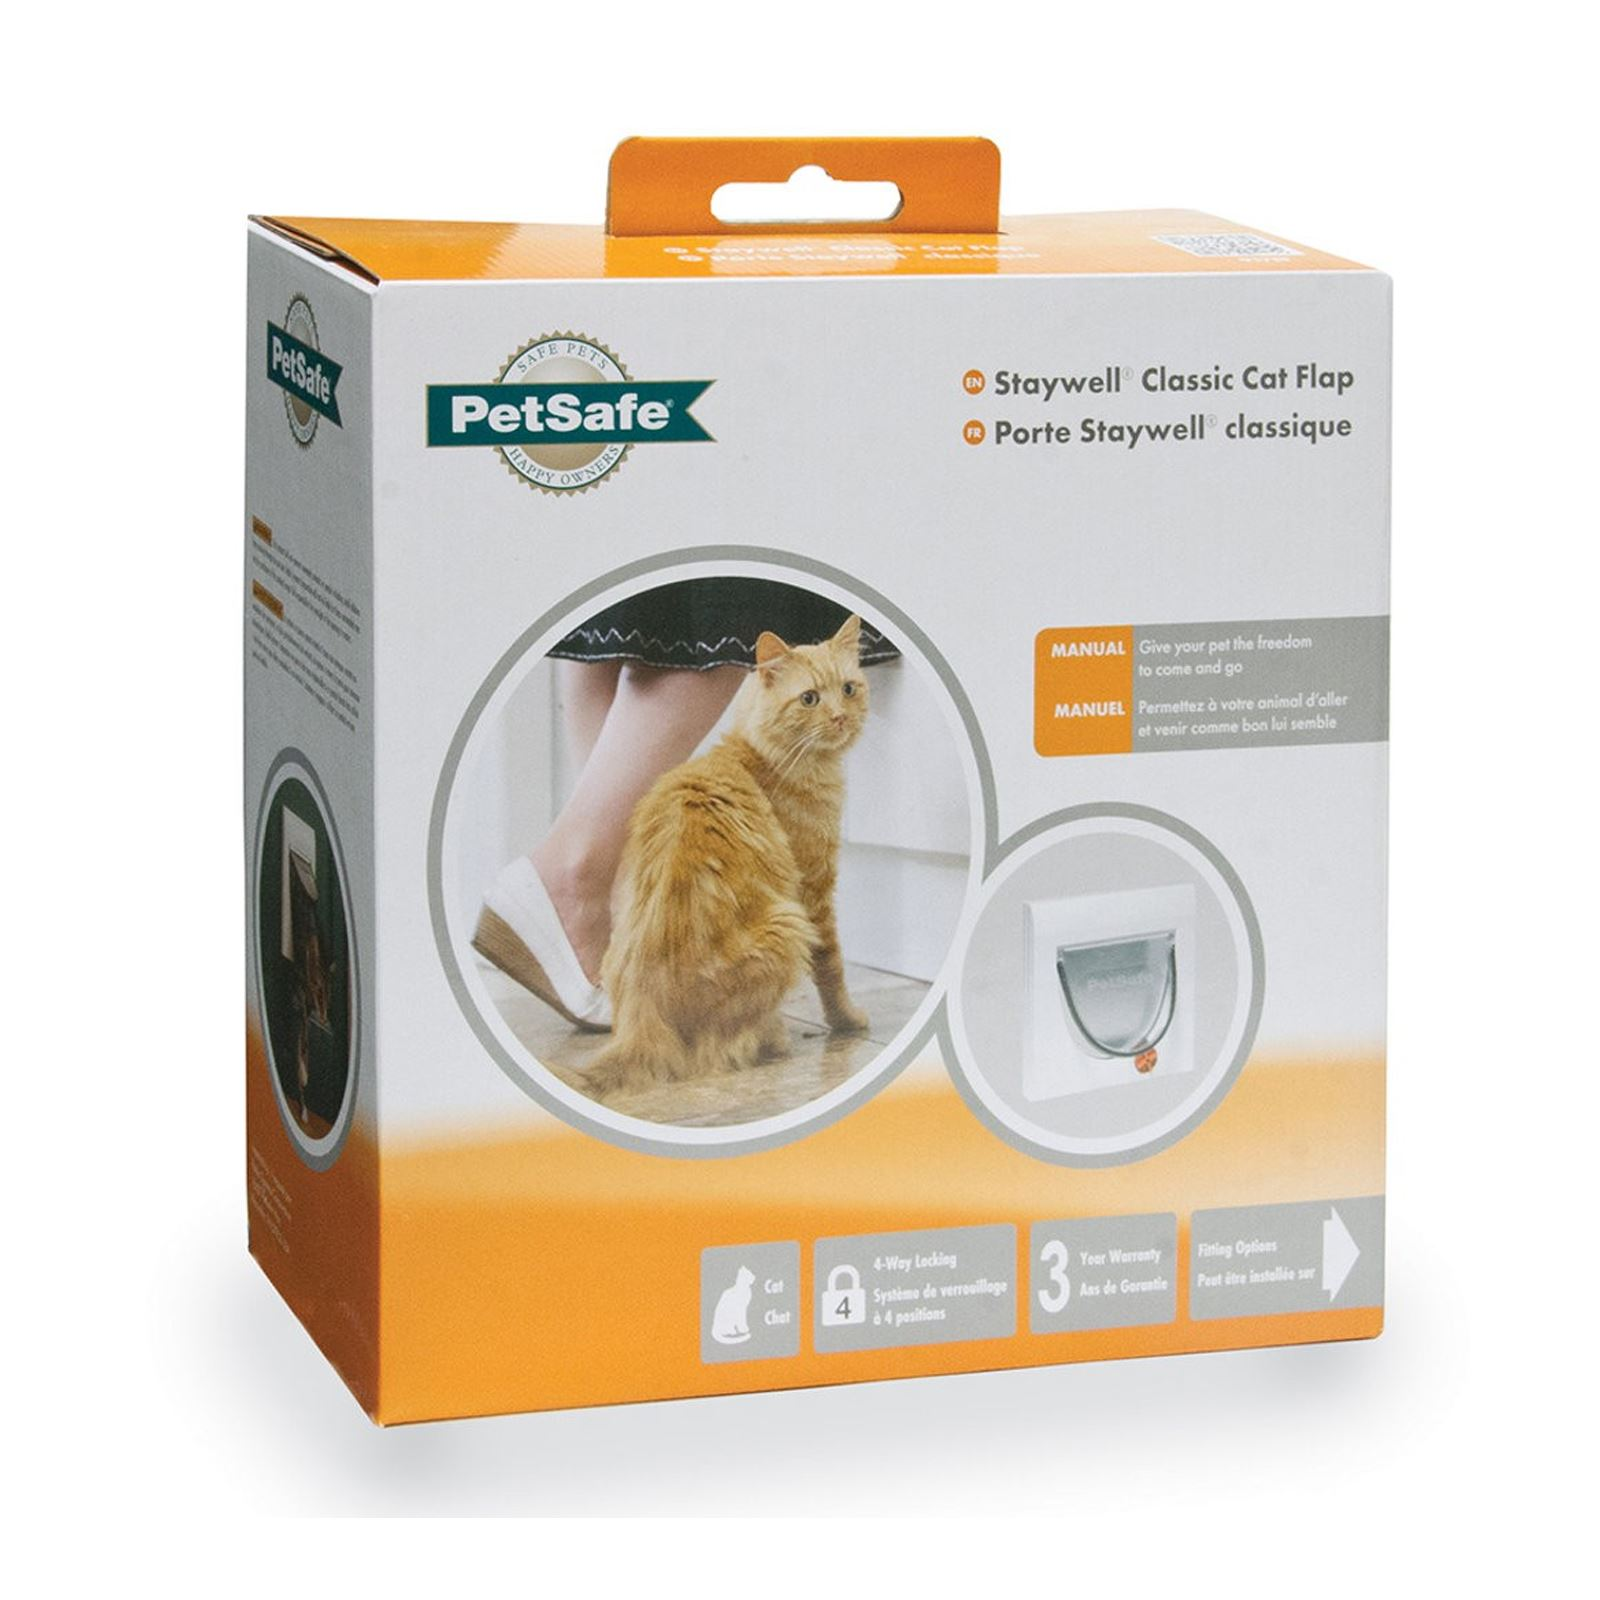 Cat-Flap-Petsafe-Staywell-Classic-4-Way-Locking-Cat-Door-Manual-Magnetic-Catflap thumbnail 7